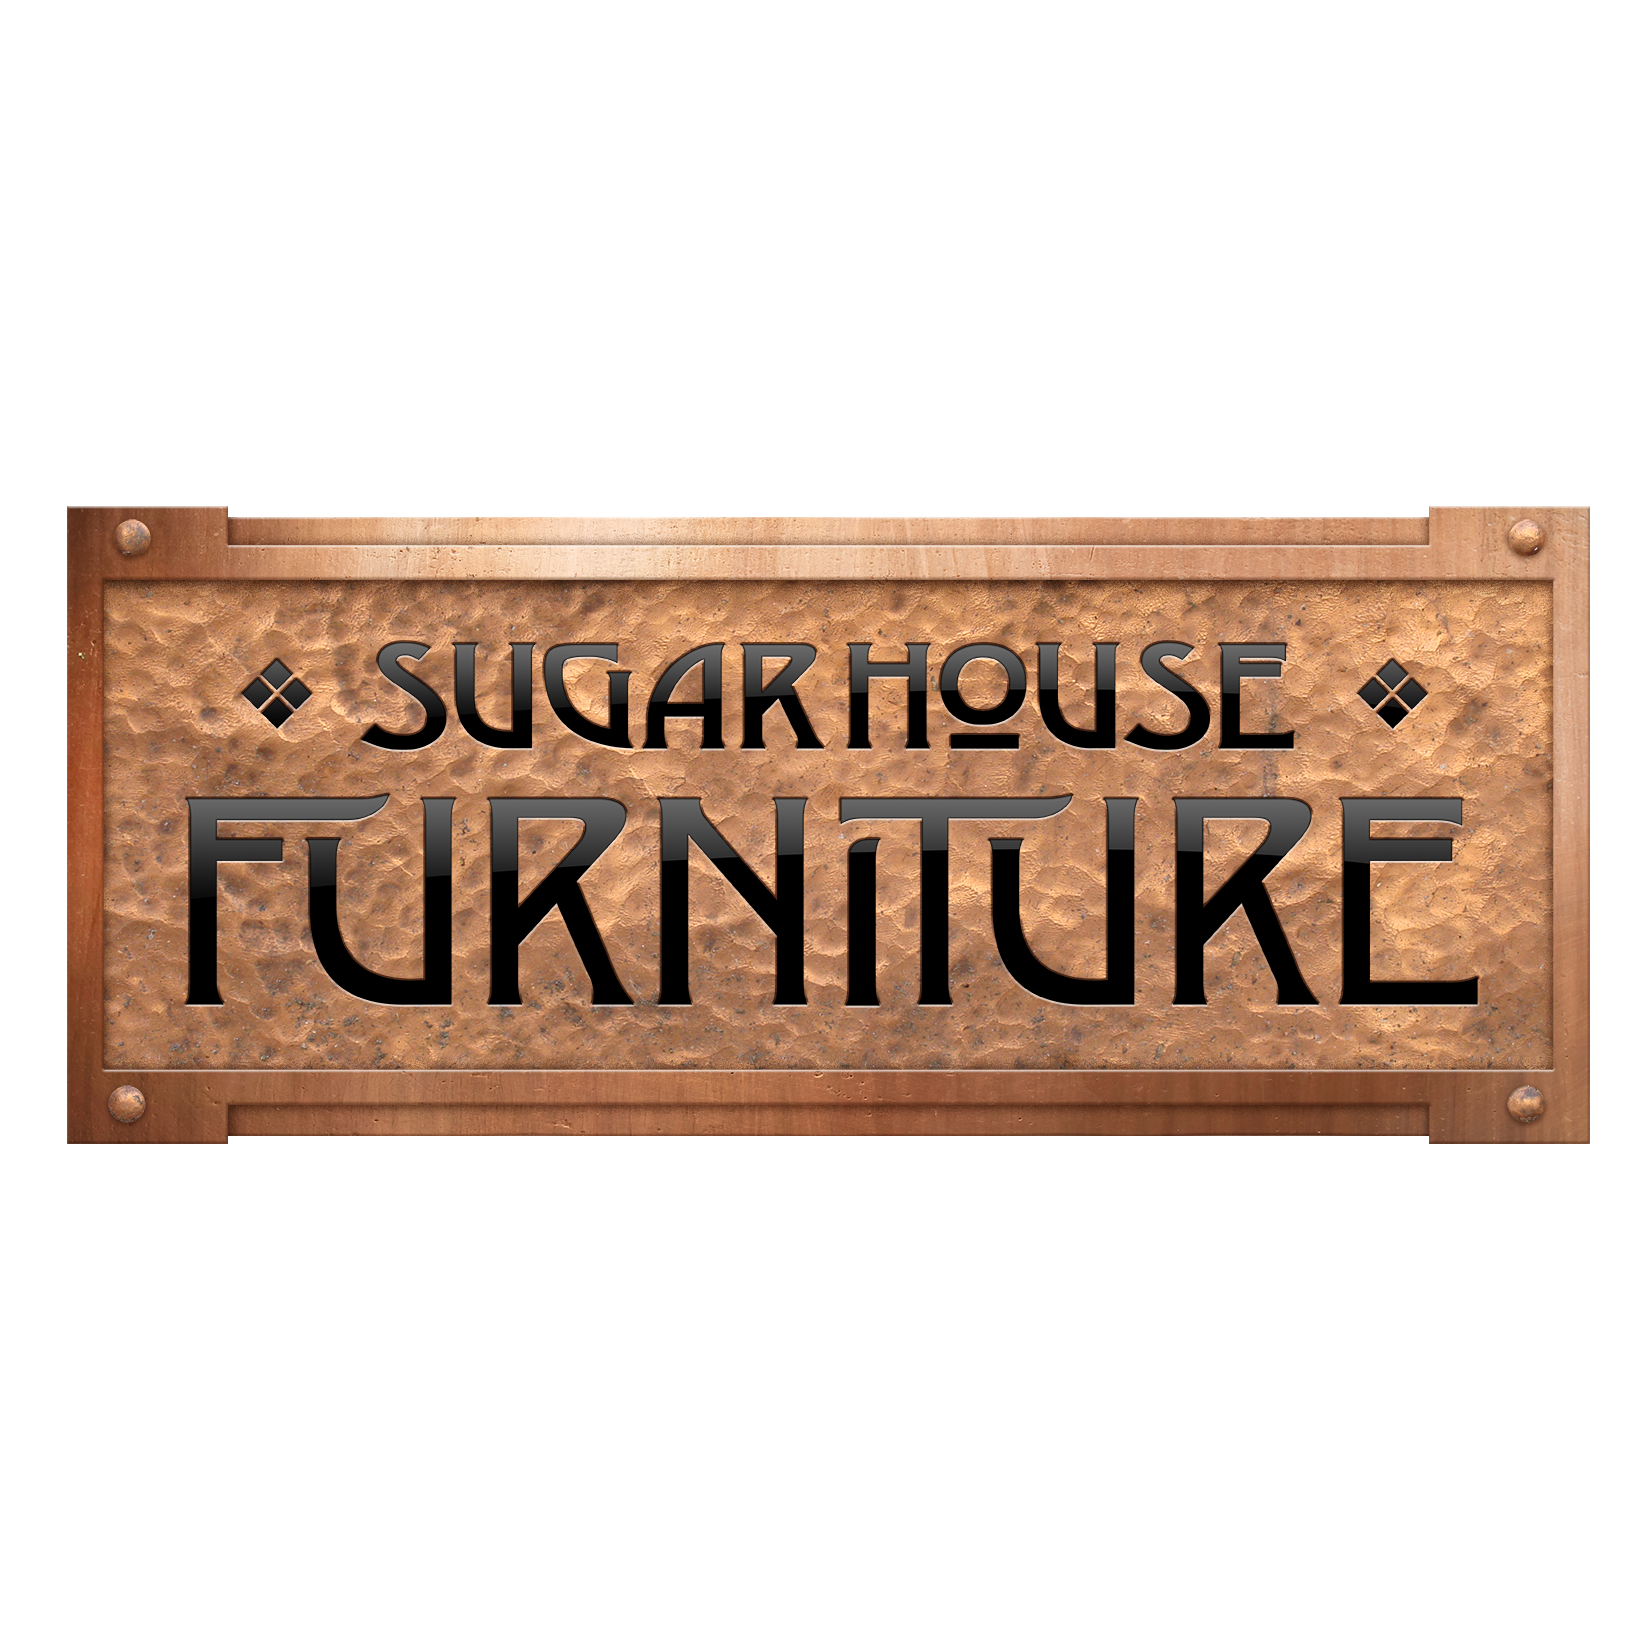 Sugar House Furniture In Salt Lake City Ut Whitepages